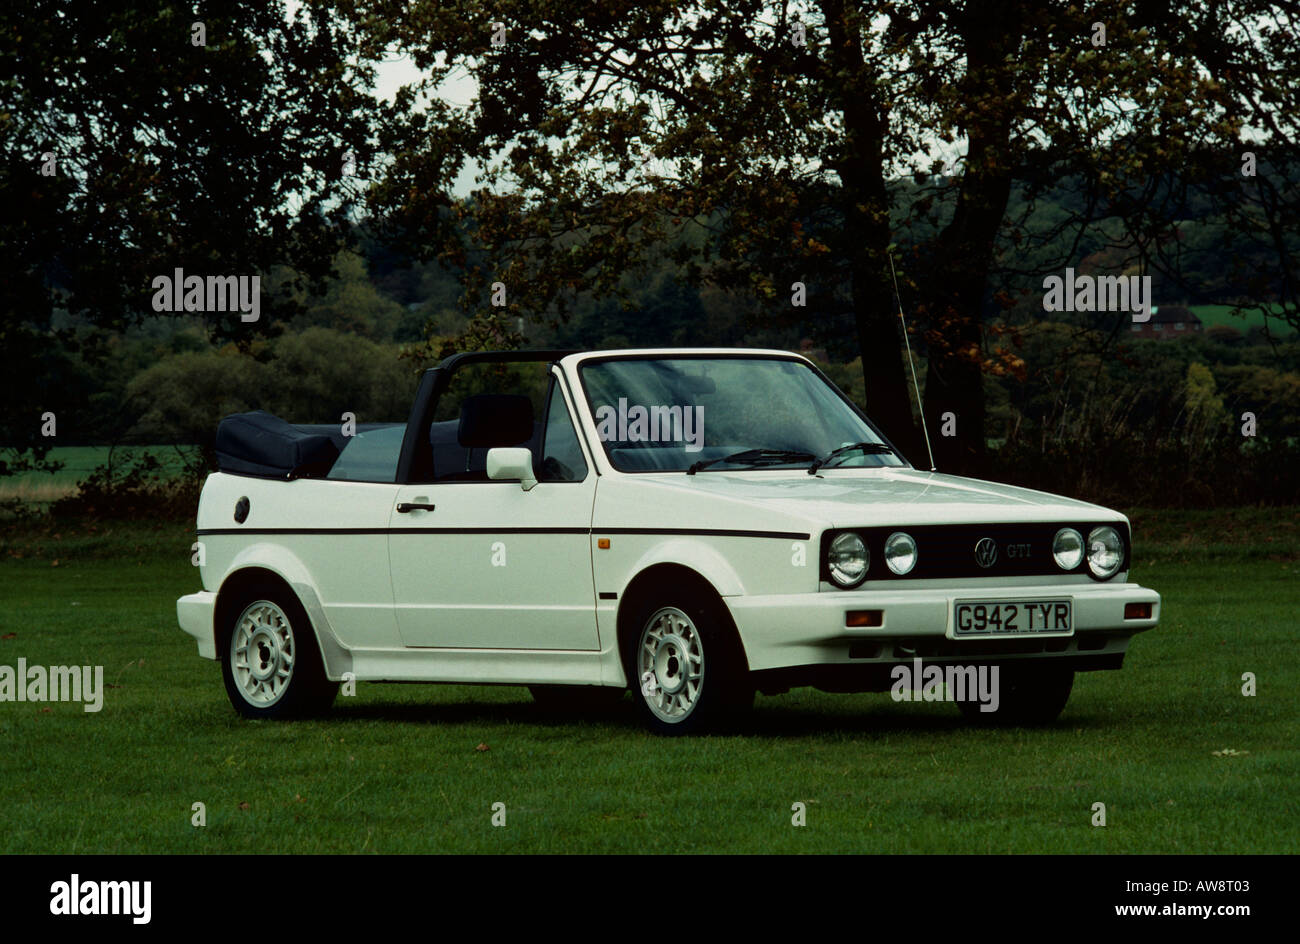 volkswagen golf mk1 gti cabriolet mk1 cabriolet 1980 to. Black Bedroom Furniture Sets. Home Design Ideas